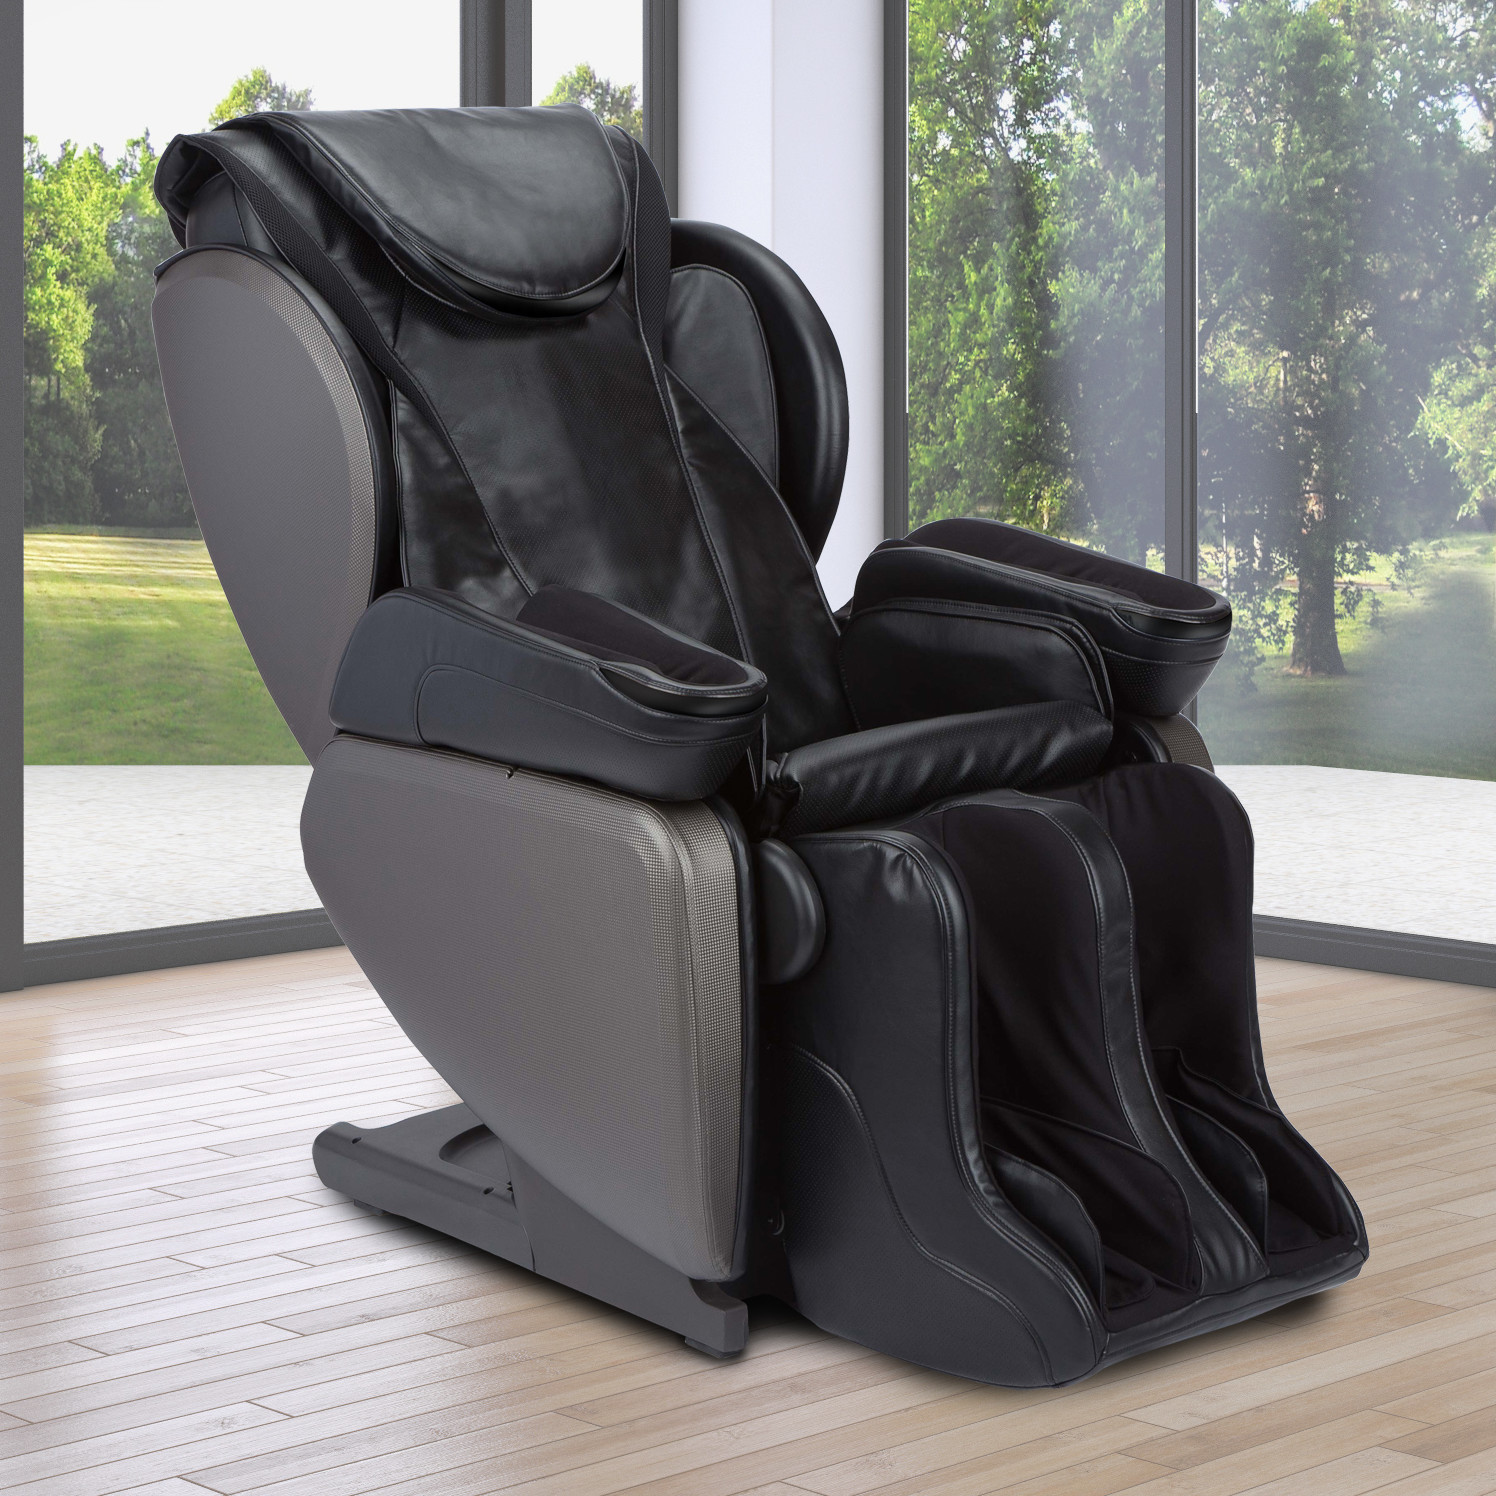 zero gravity massage chair design